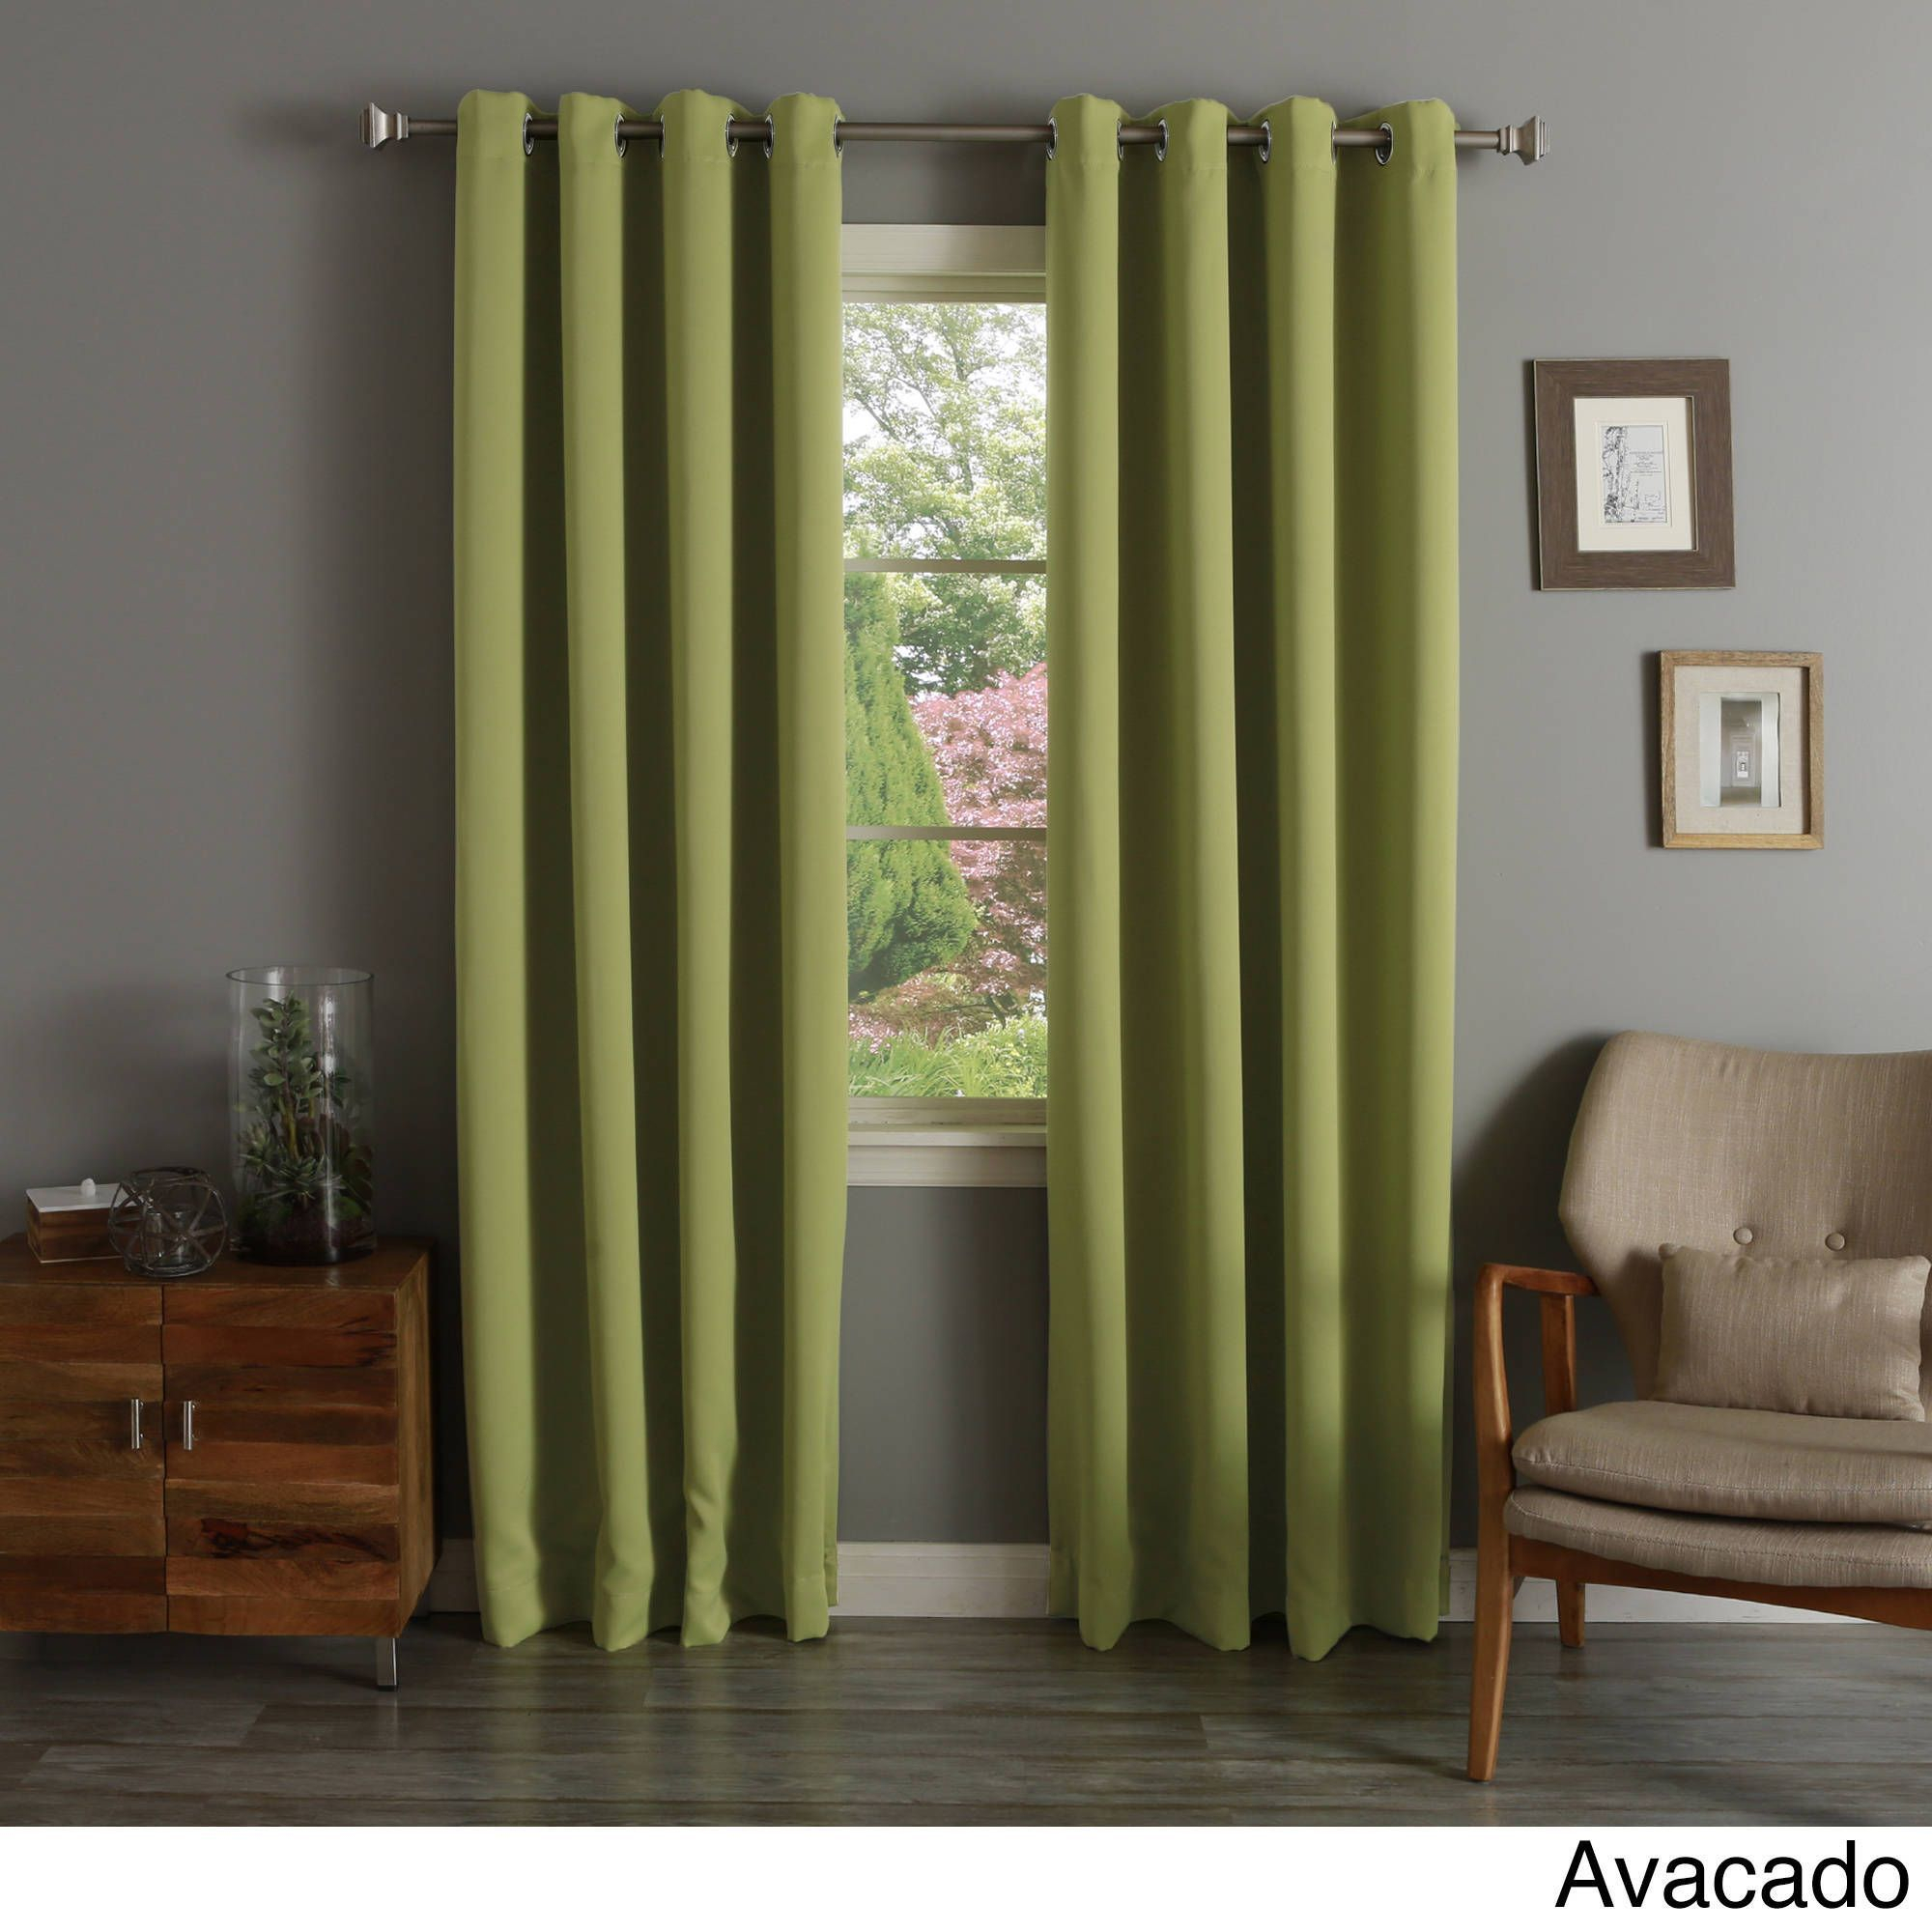 Aurora Home Silvertone Grommet Top Thermal Insulated With Silvertone Grommet Thermal Insulated Blackout Curtain Panel Pairs (View 14 of 30)